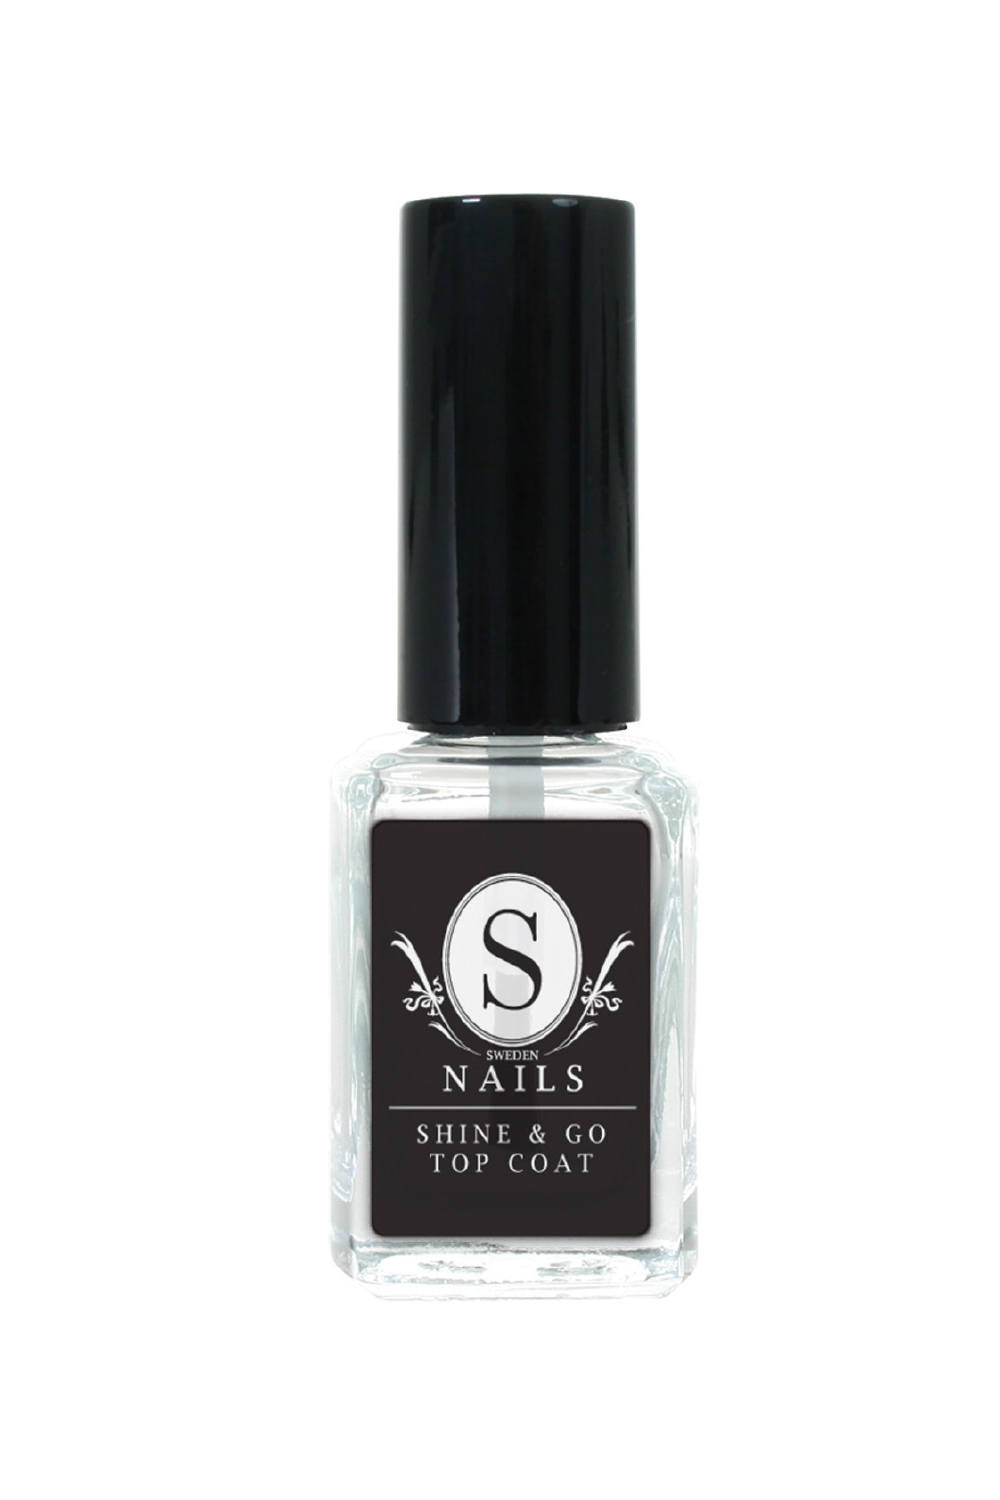 Foto Sweden Nails Top Coat